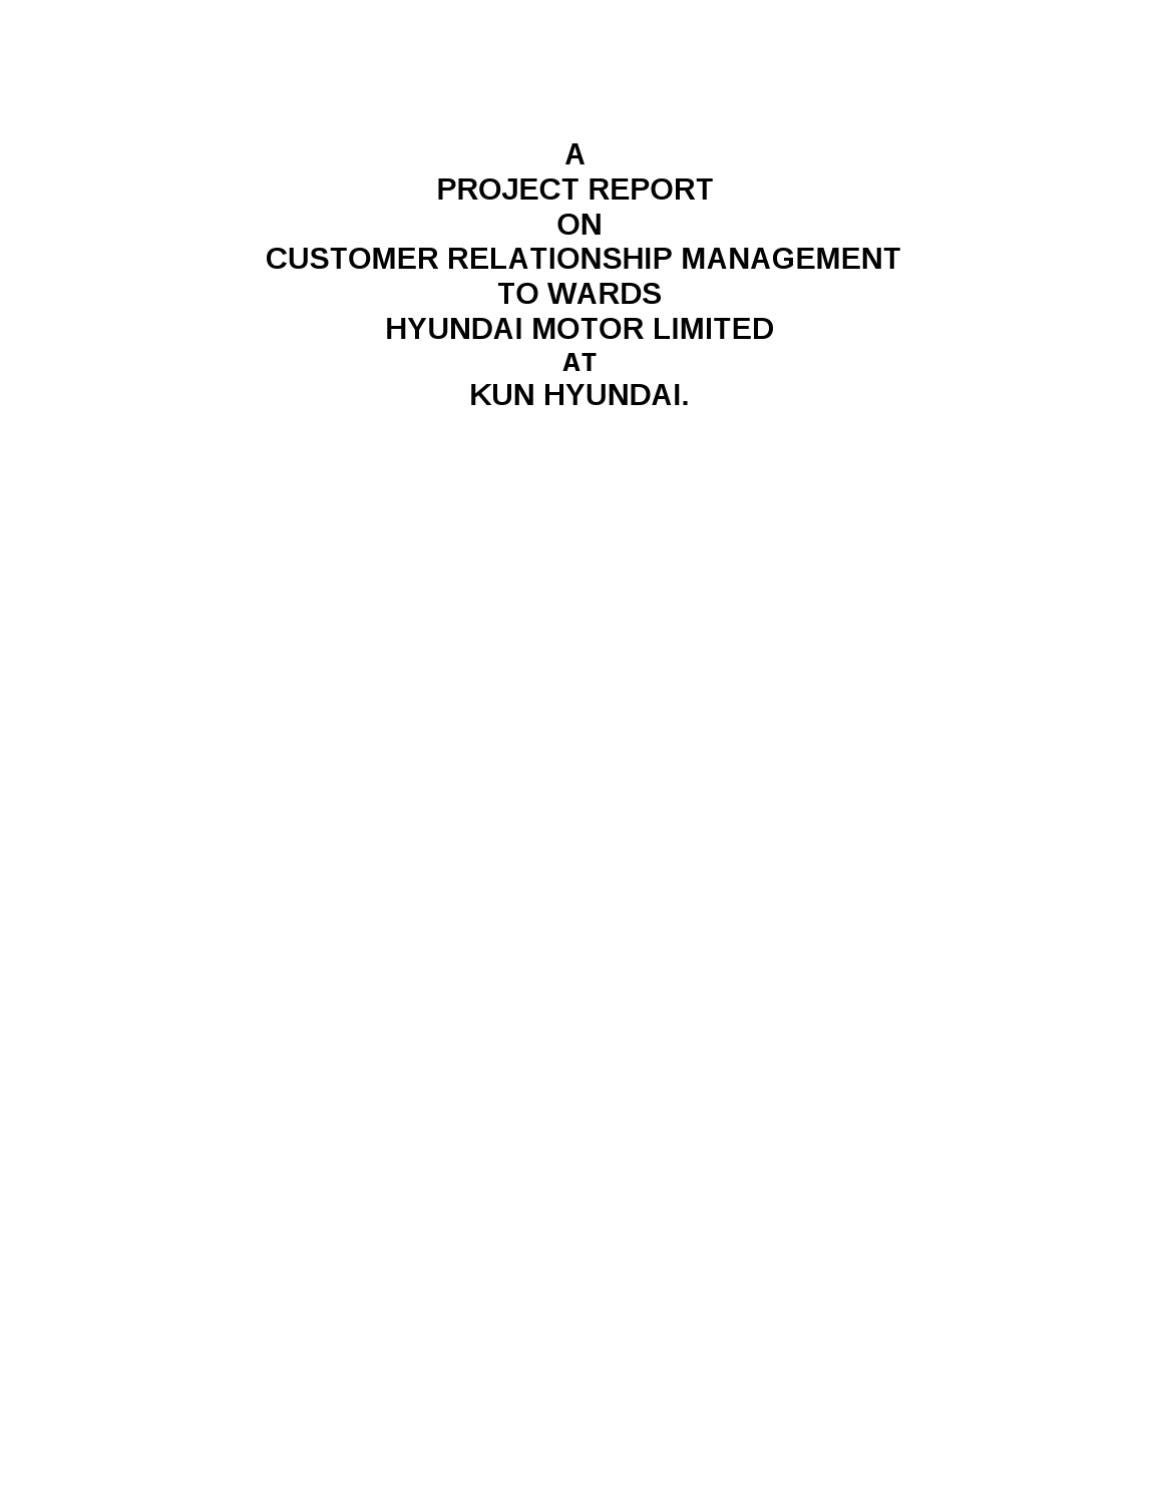 Dissertation report on crm